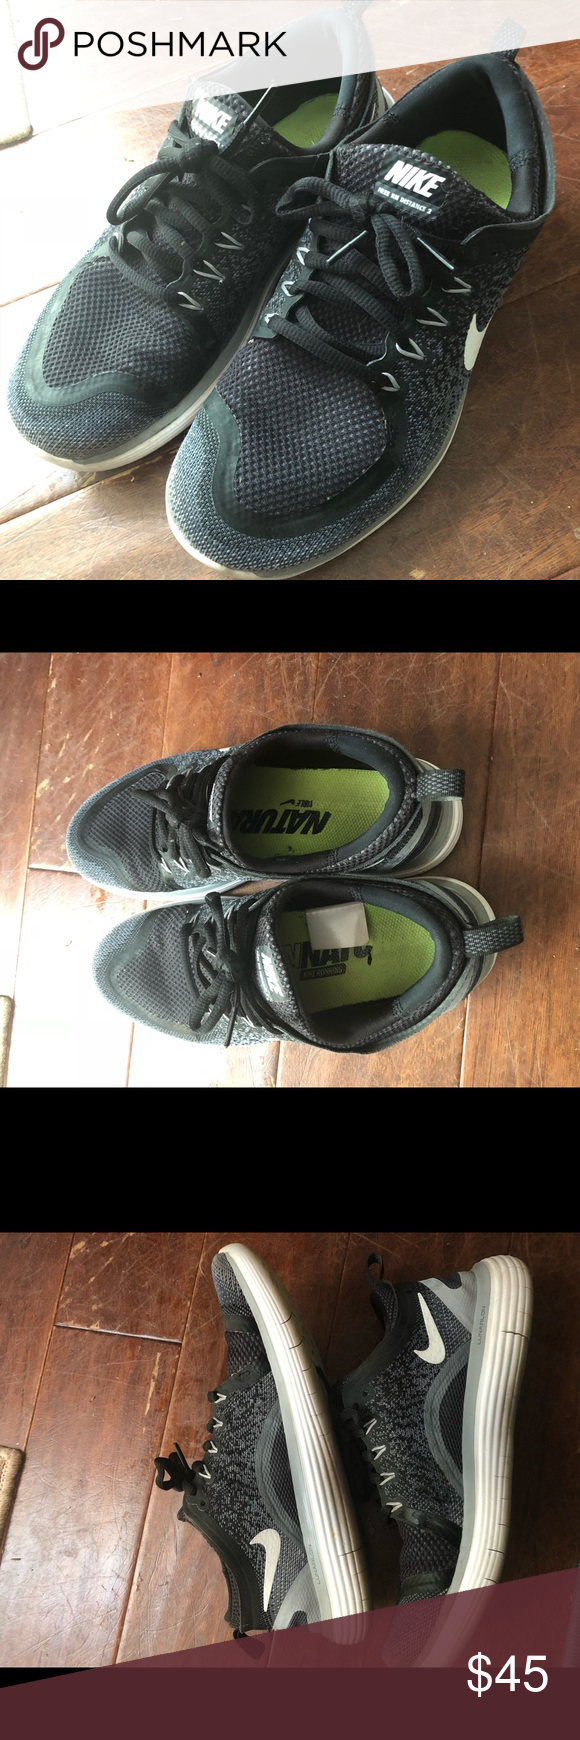 7cd6ea18d9a Nike Free RN Distance 2 Running Shoes Used but still in good condition.  Show minor wear on bottom and the print on the insoles. Nike Shoes